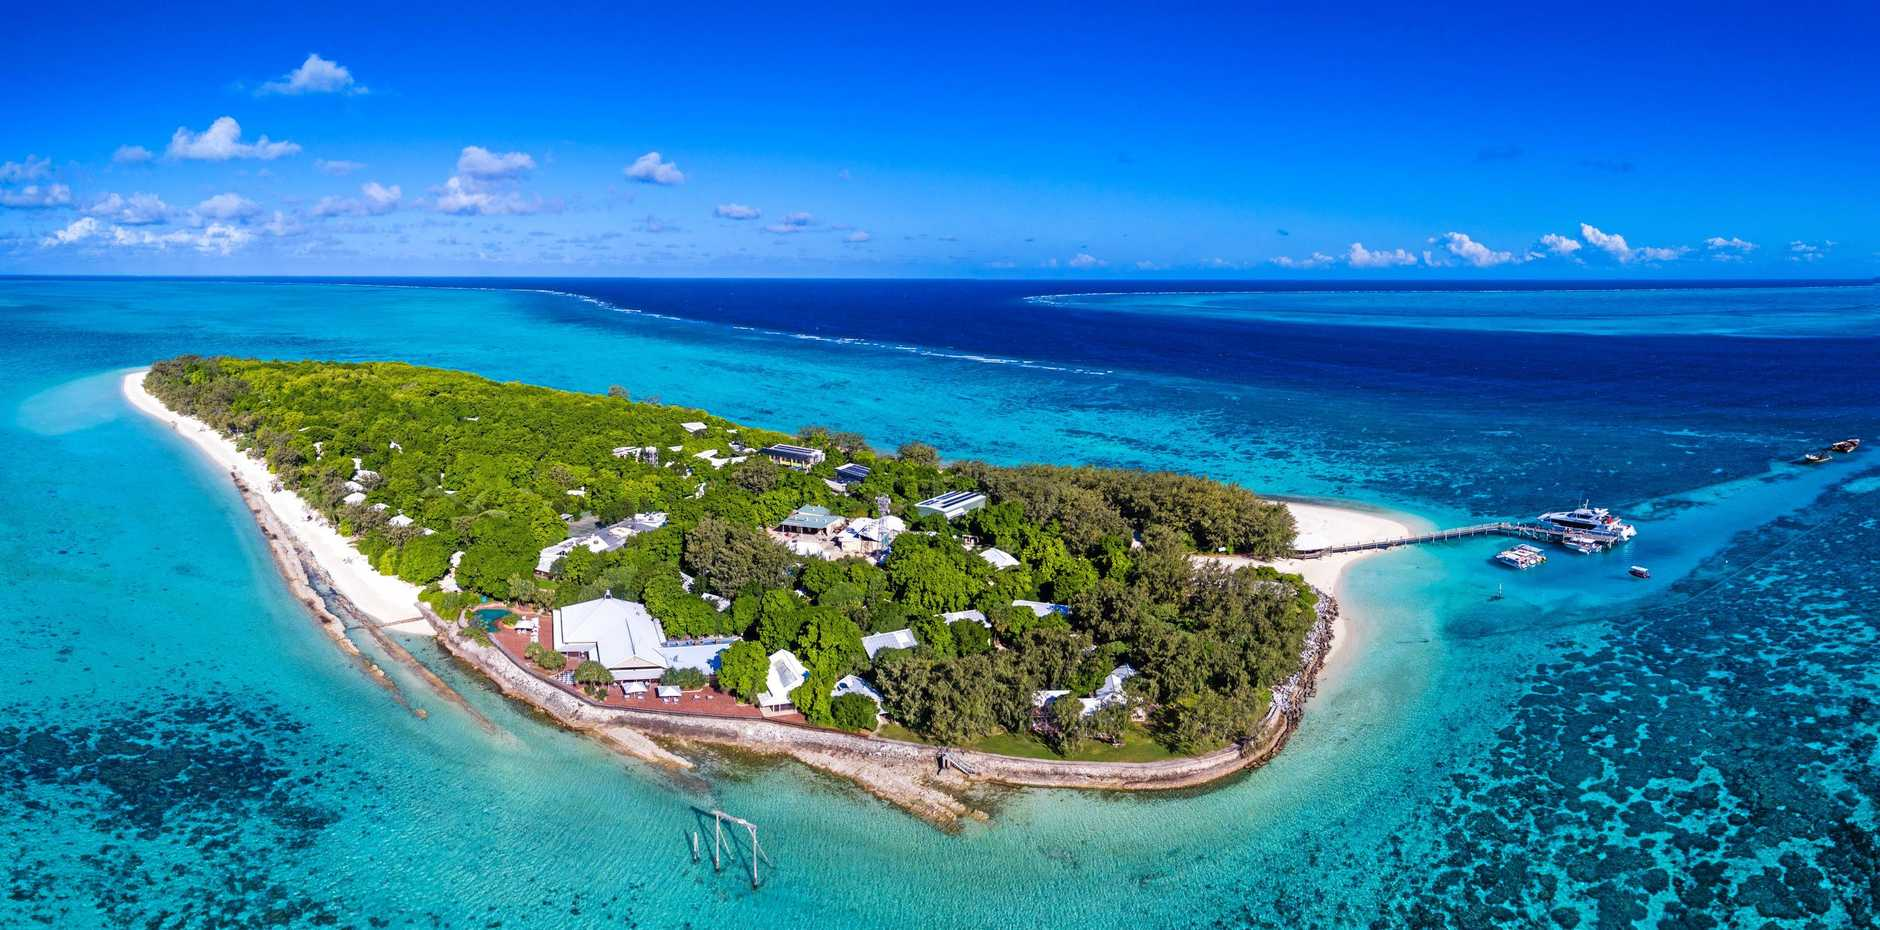 SPECIAL PLACE: Heron Island will feature on  Blue Planet Live , which is expected to be watched by millions when its four episodes are streamed globally in March.